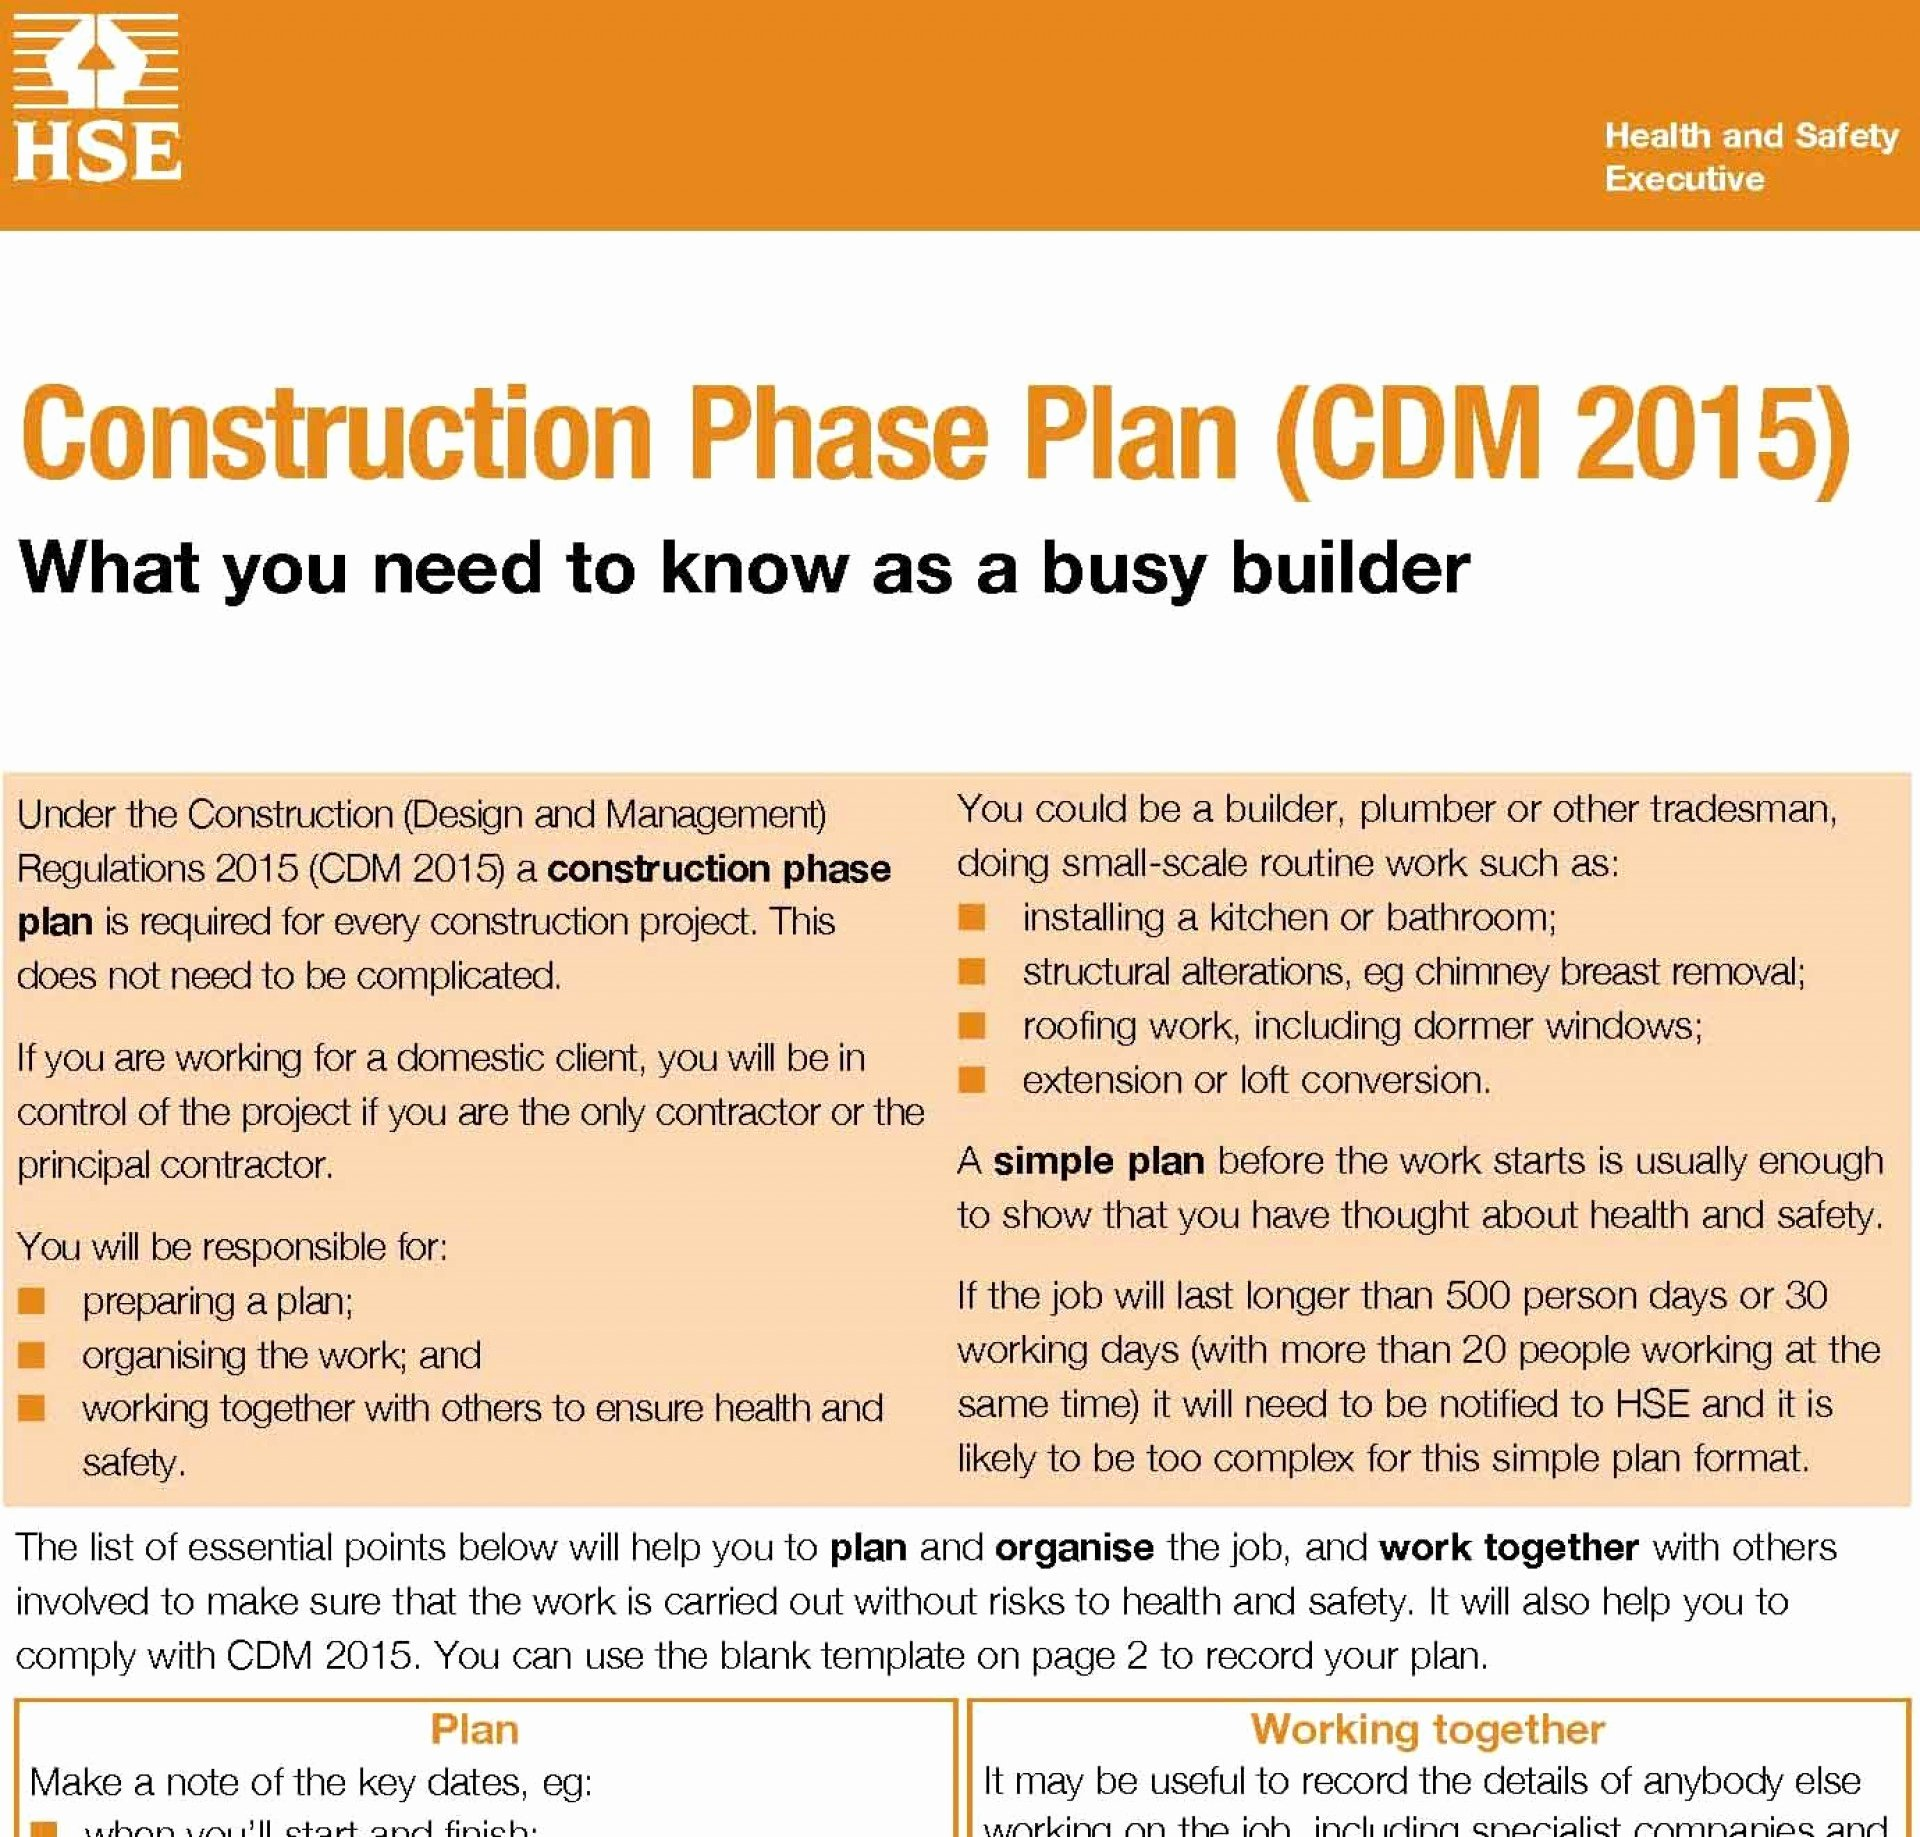 Construction Safety Plan Template Lovely 004 Plan Template Construction Phase Health and Safety